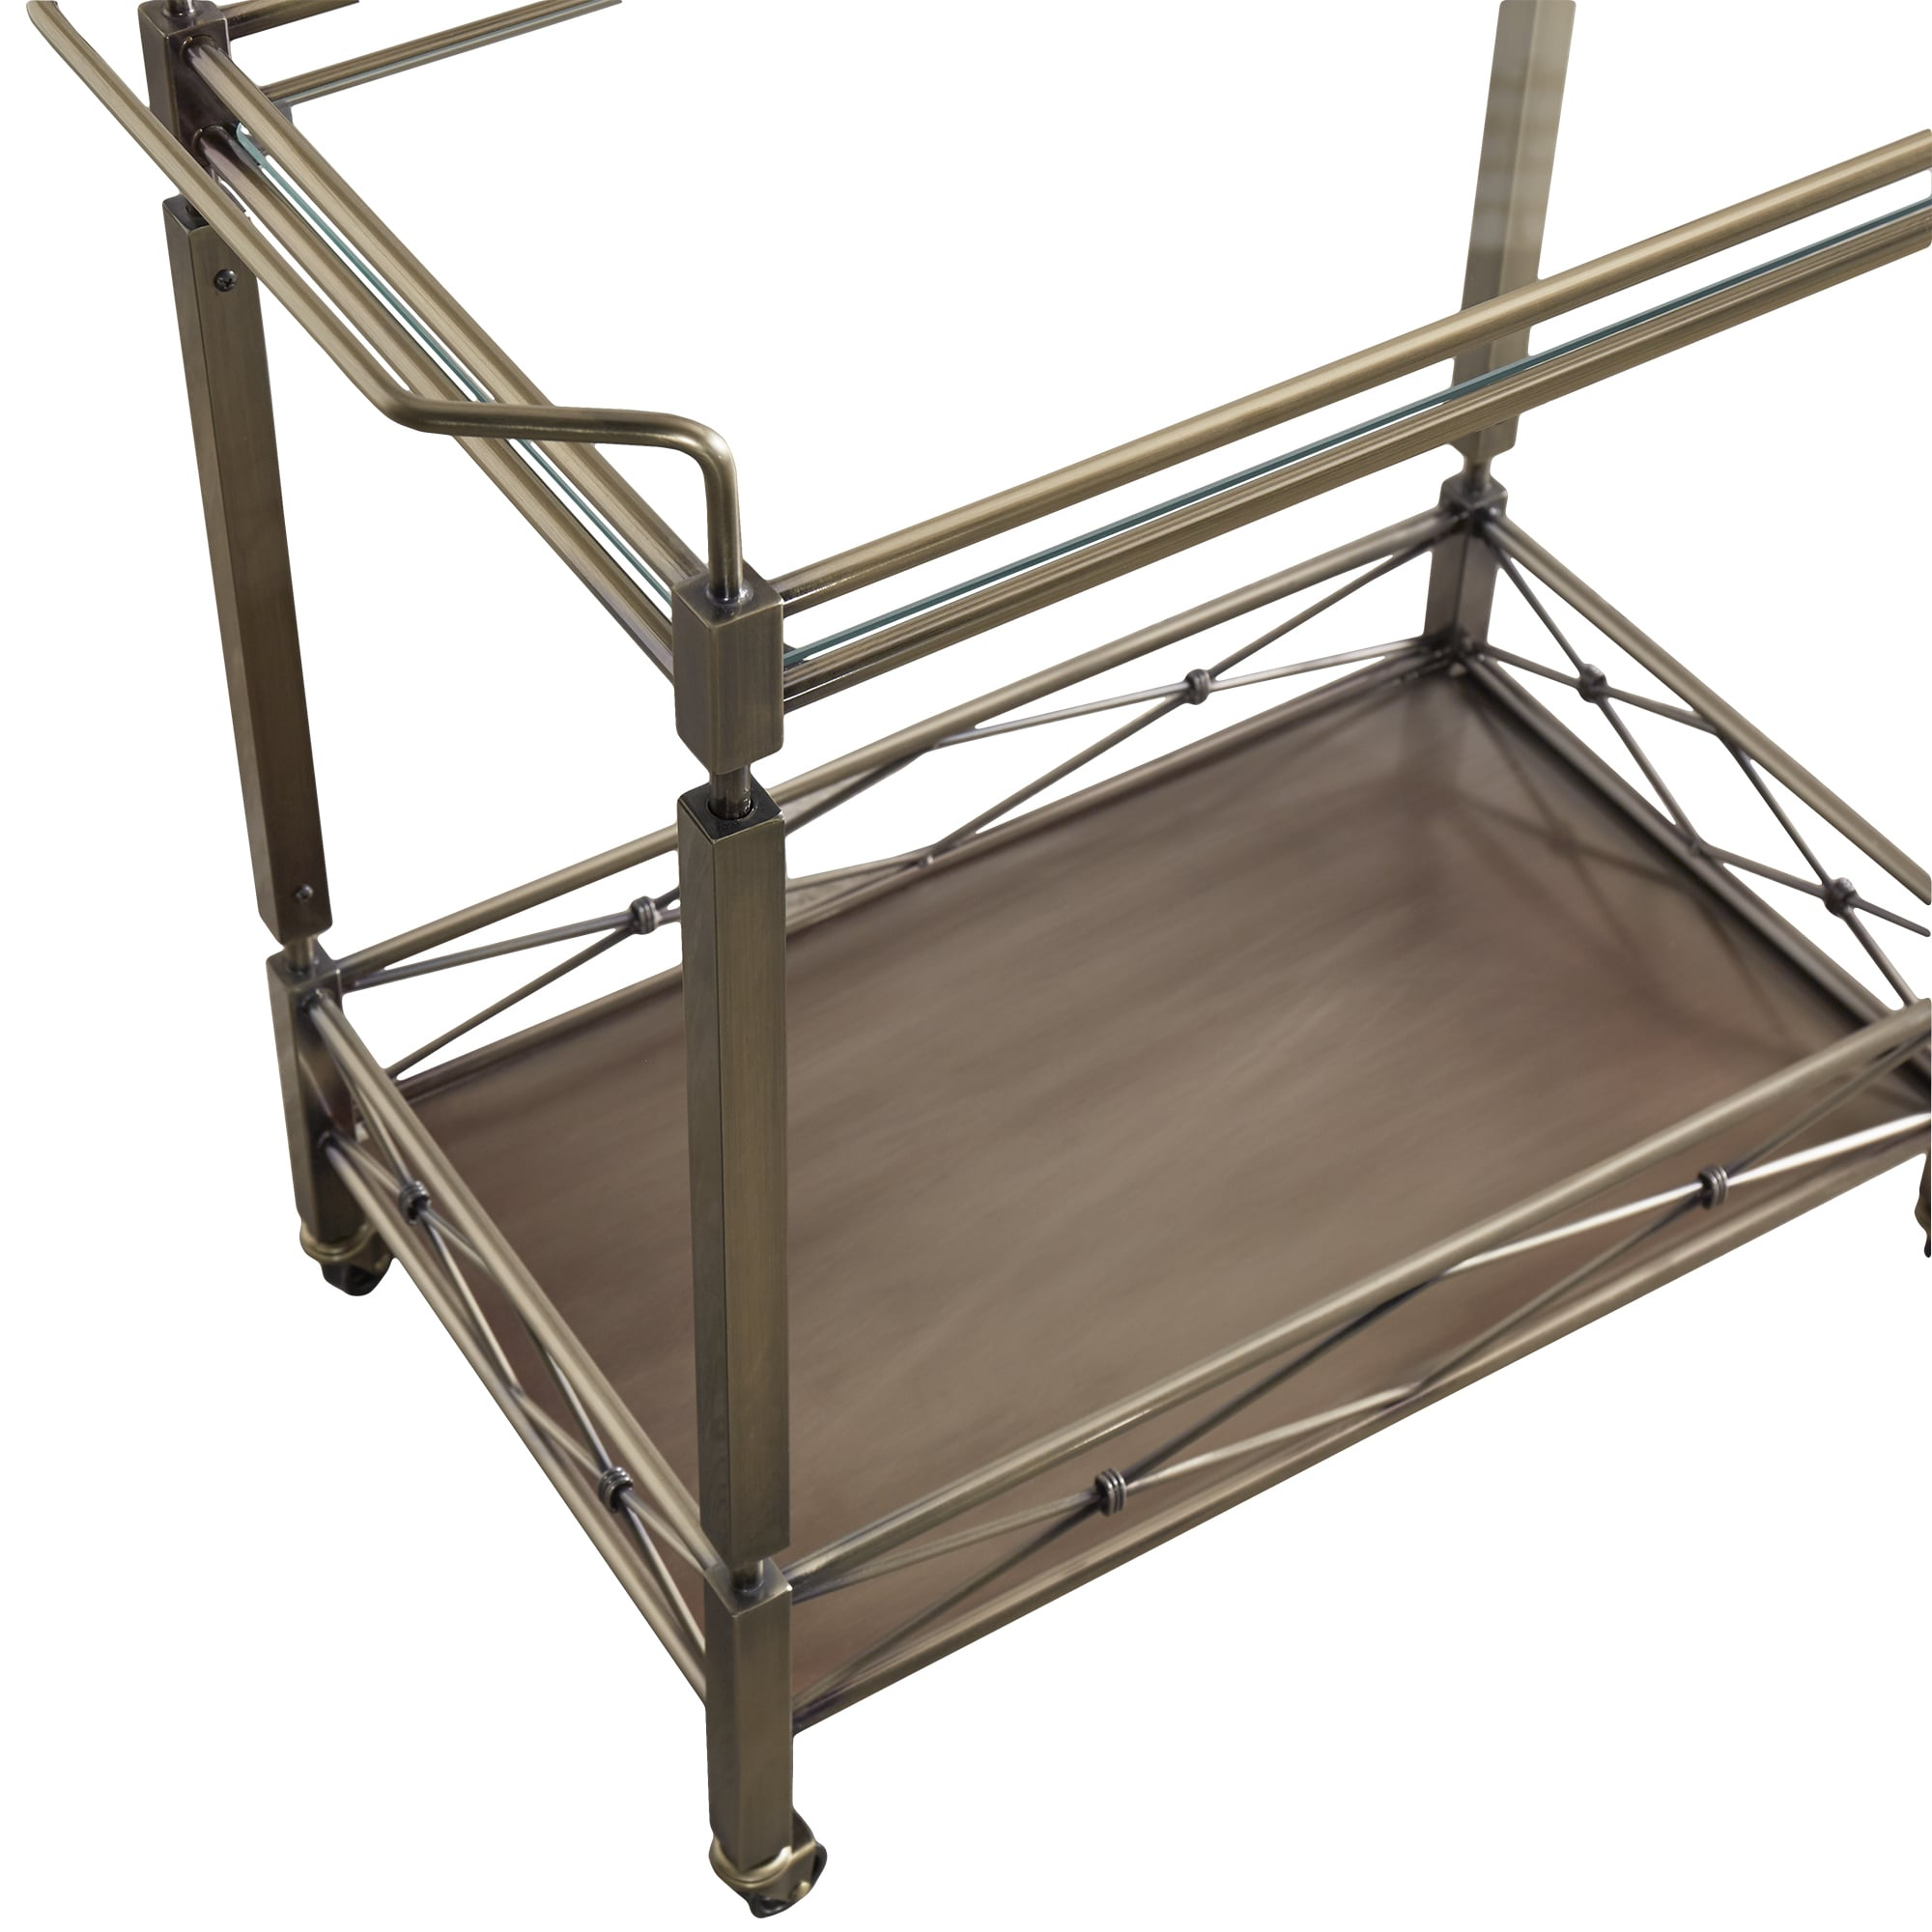 Metropolitan Antique Brass Metal Bar Cart With Glass Top By Inspire Q Bold On Sale Overstock 13057092